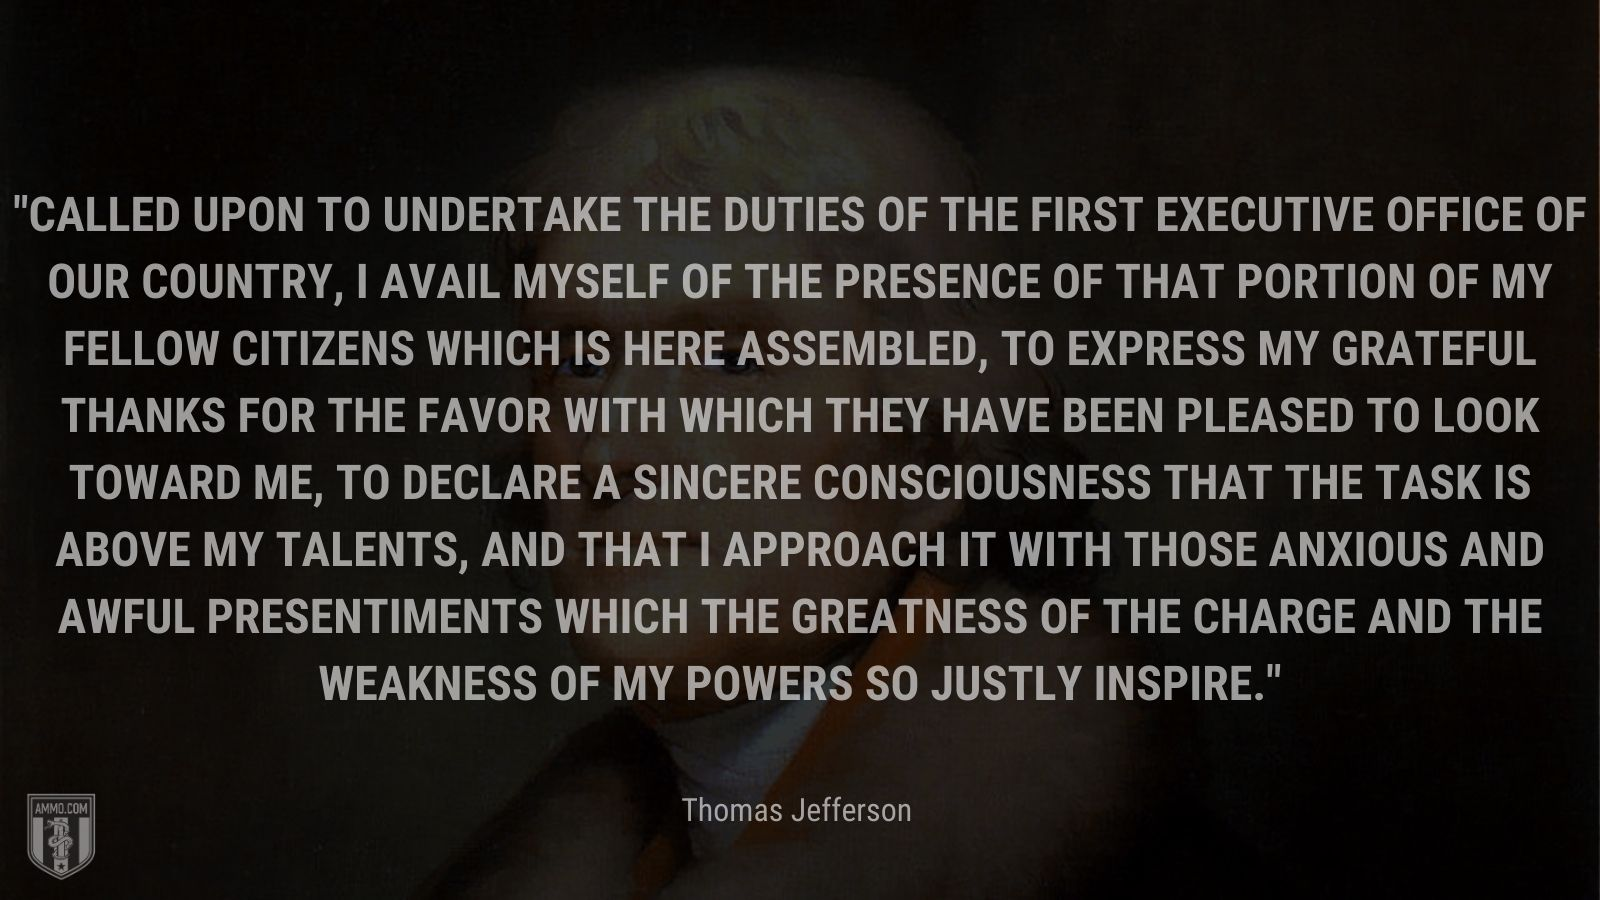 """""""Called upon to undertake the duties of the first executive office of our country, I avail myself of the presence of that portion of my fellow citizens which is here assembled, to express my grateful thanks for the favor with which they have been pleased to look toward me, to declare a sincere consciousness that the task is above my talents, and that I approach it with those anxious and awful presentiments which the greatness of the charge and the weakness of my powers so justly inspire."""" - Thomas Jefferson"""